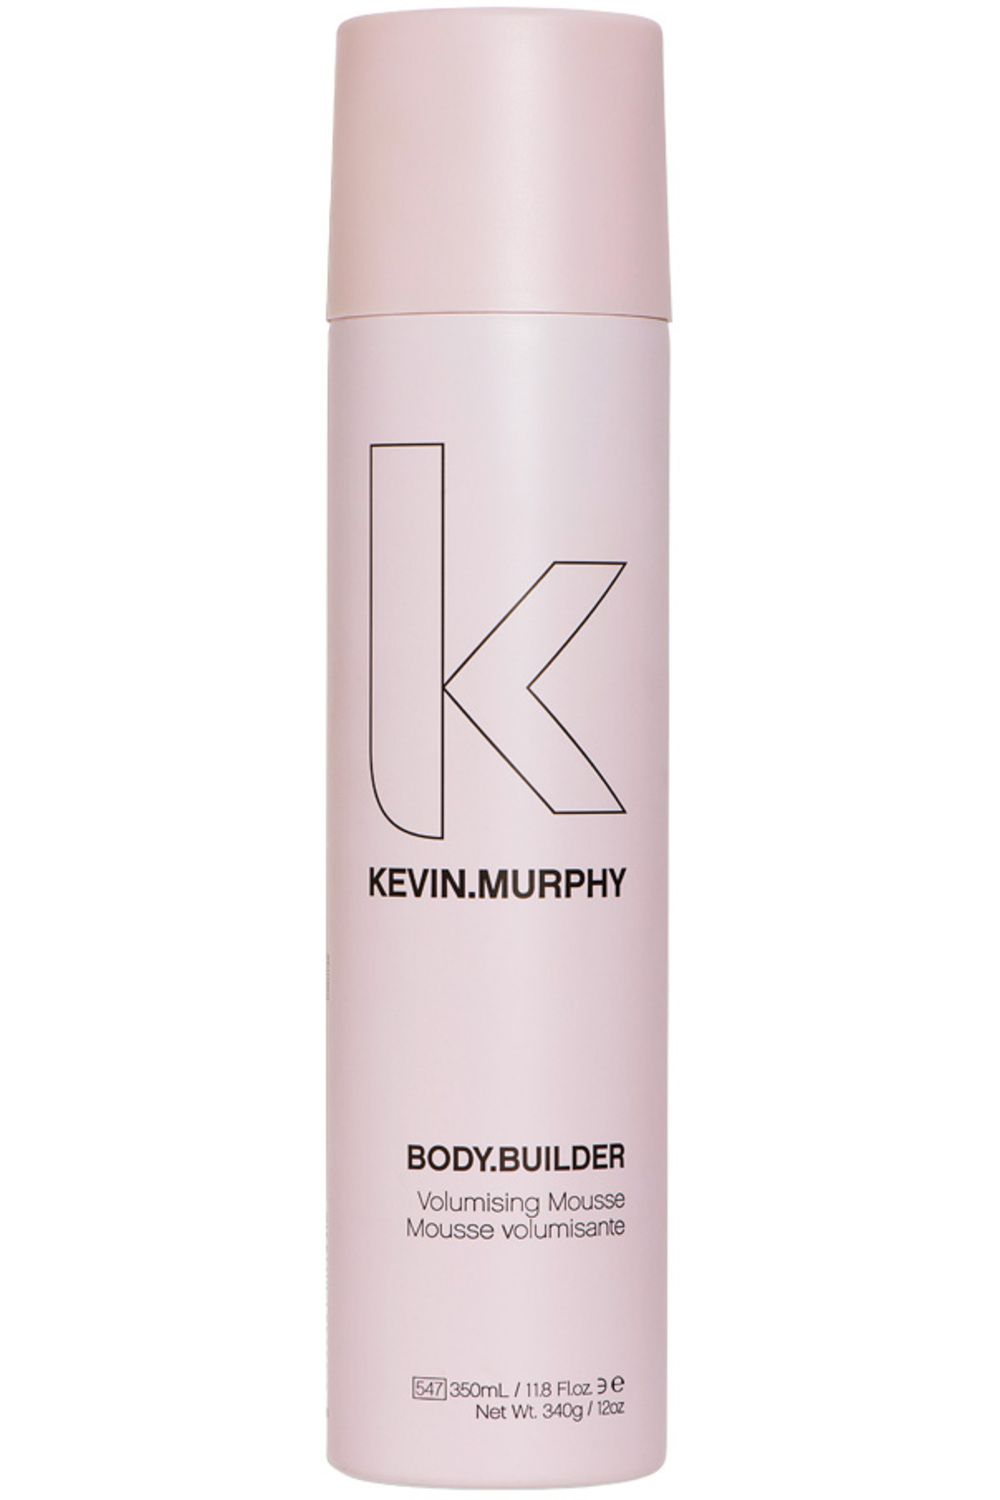 Blissim : KEVIN.MURPHY - Mousse volumisante BODY.BUILDER - Mousse volumisante BODY.BUILDER